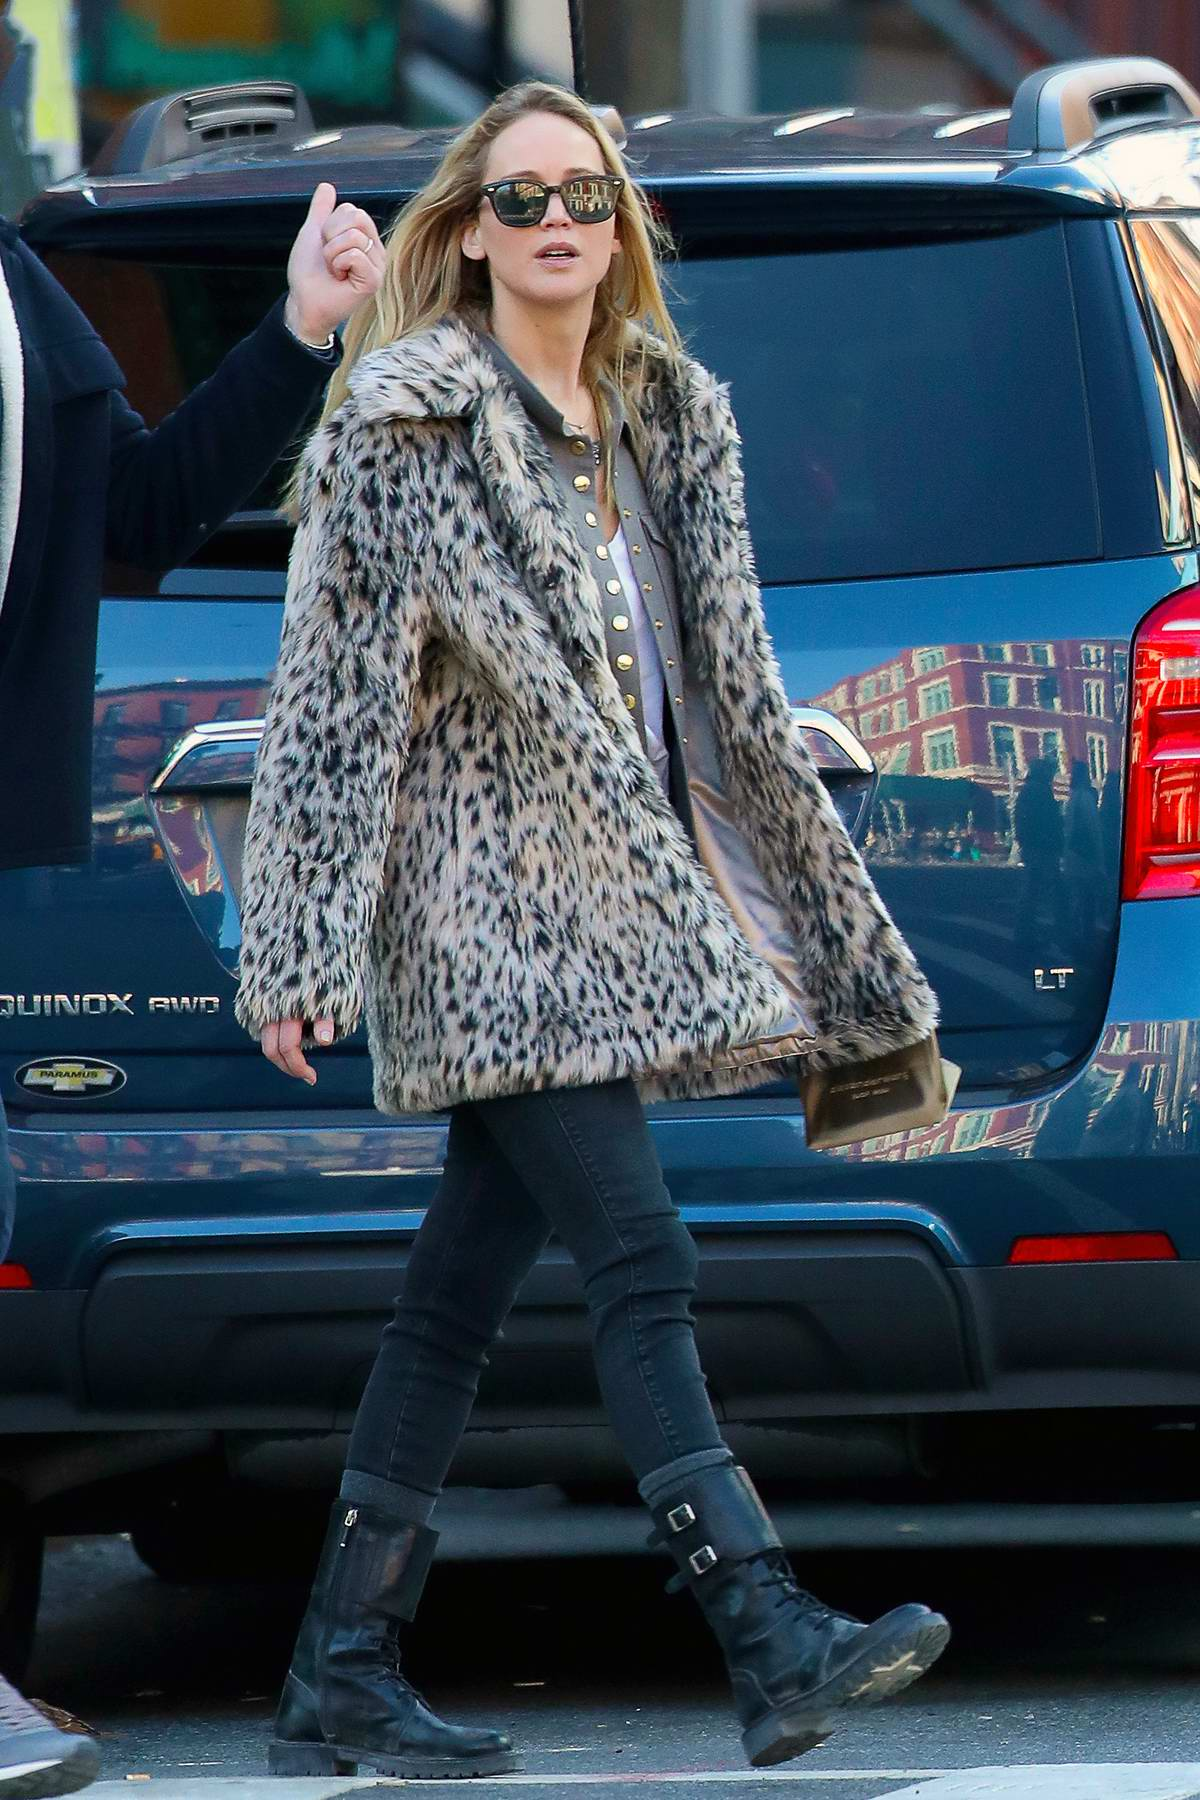 Jennifer Lawrence seen wearing an animal print coat while out and about with Cooke Maroney in New York City